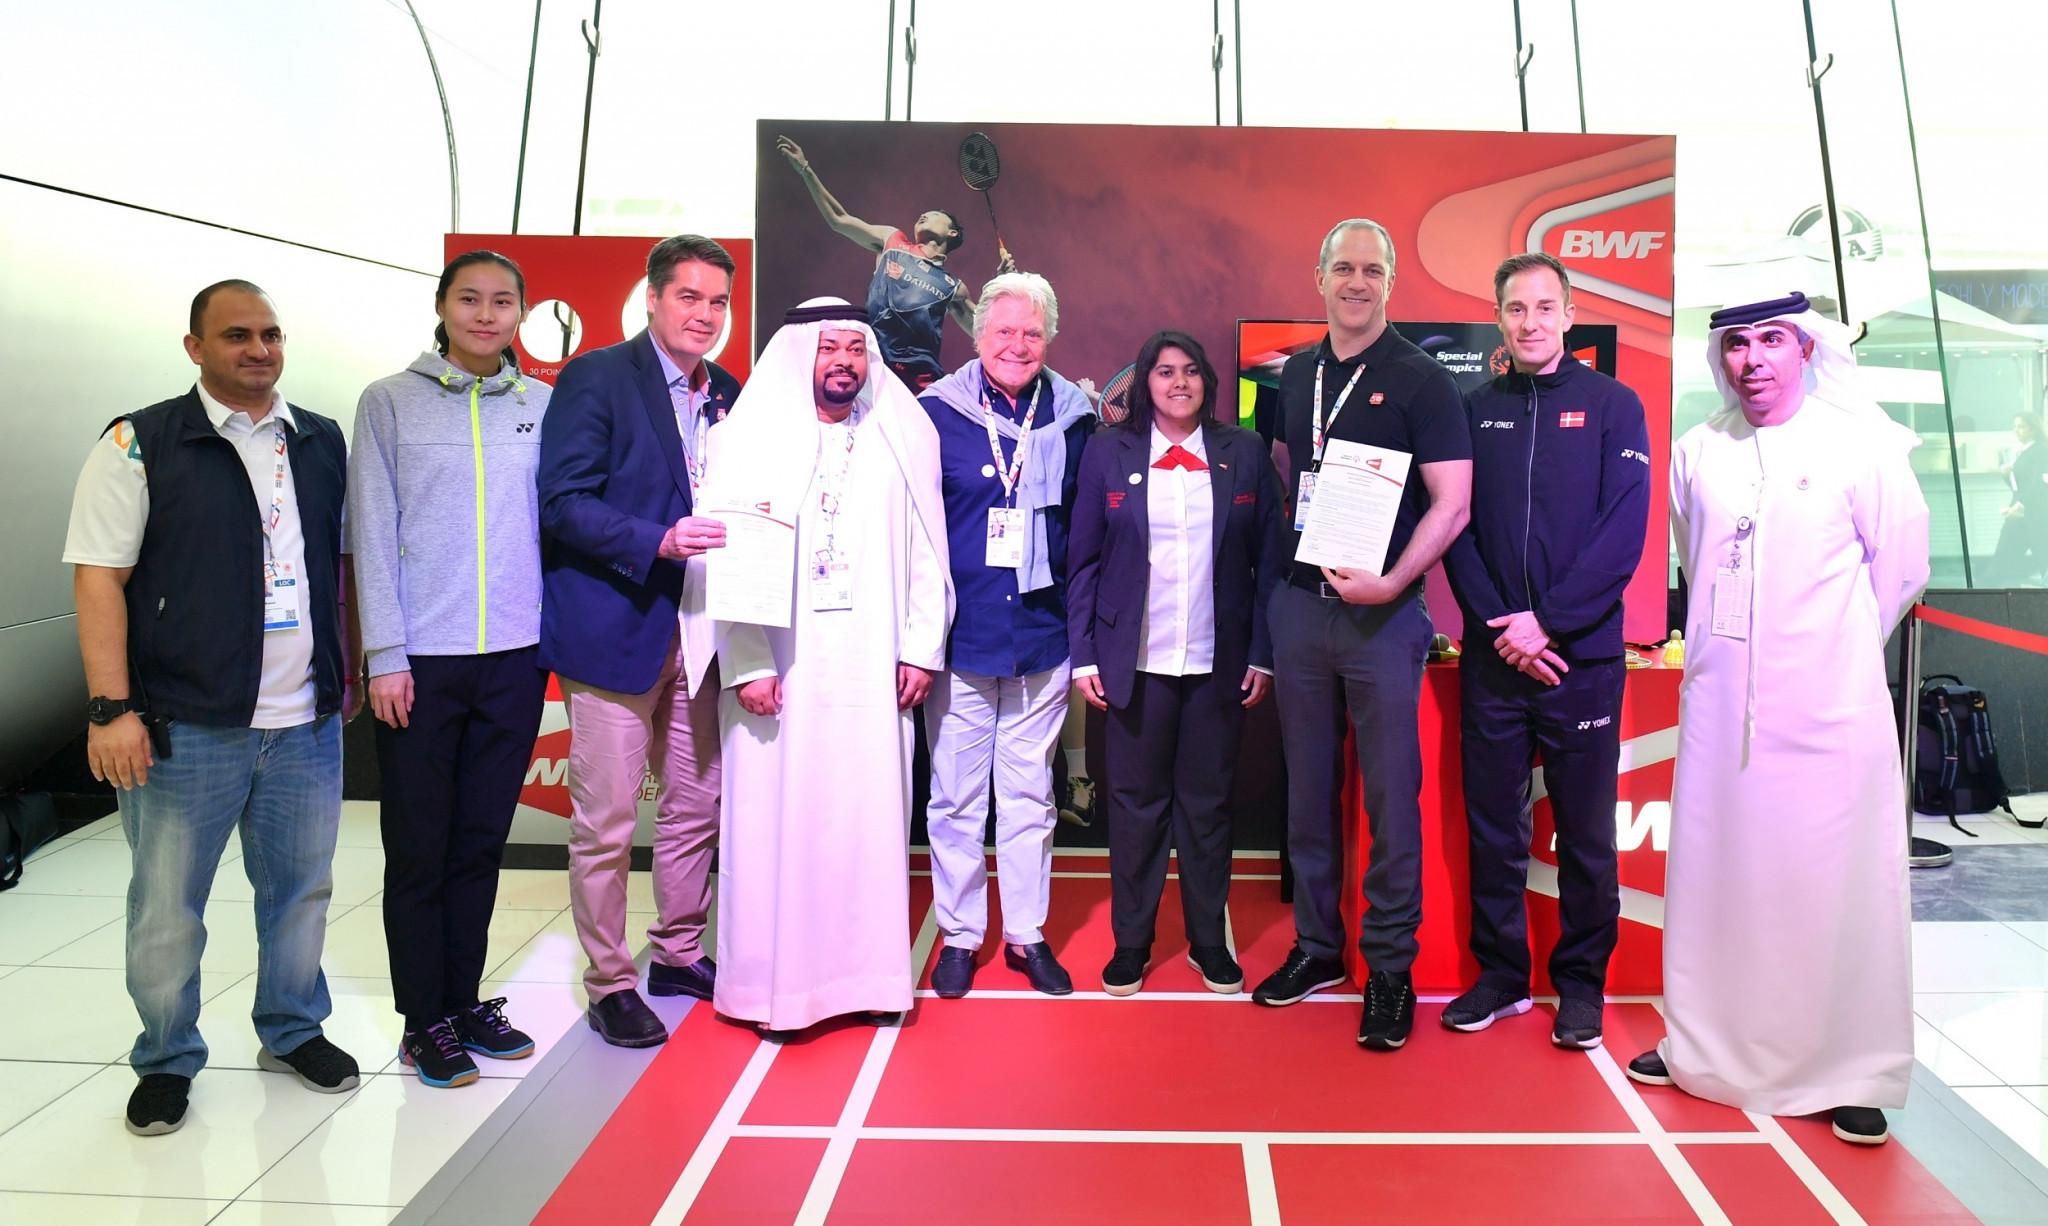 Badminton World Federation and Special Olympics launch long-term partnership